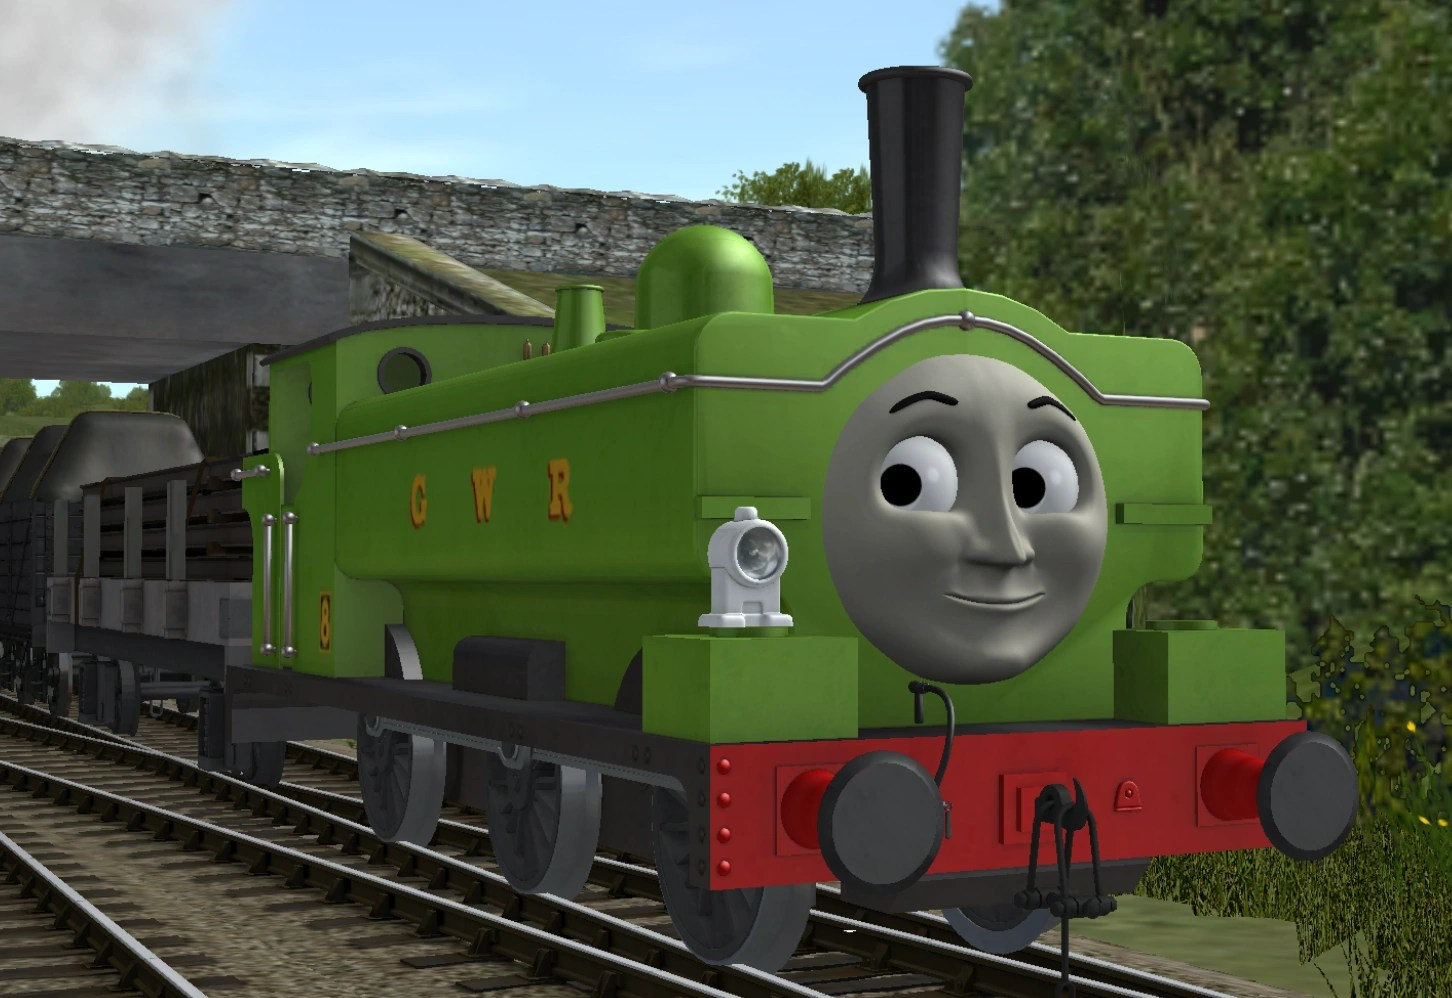 20+ Trainz Thomas And Friends Promo Pictures and Ideas on Meta Networks